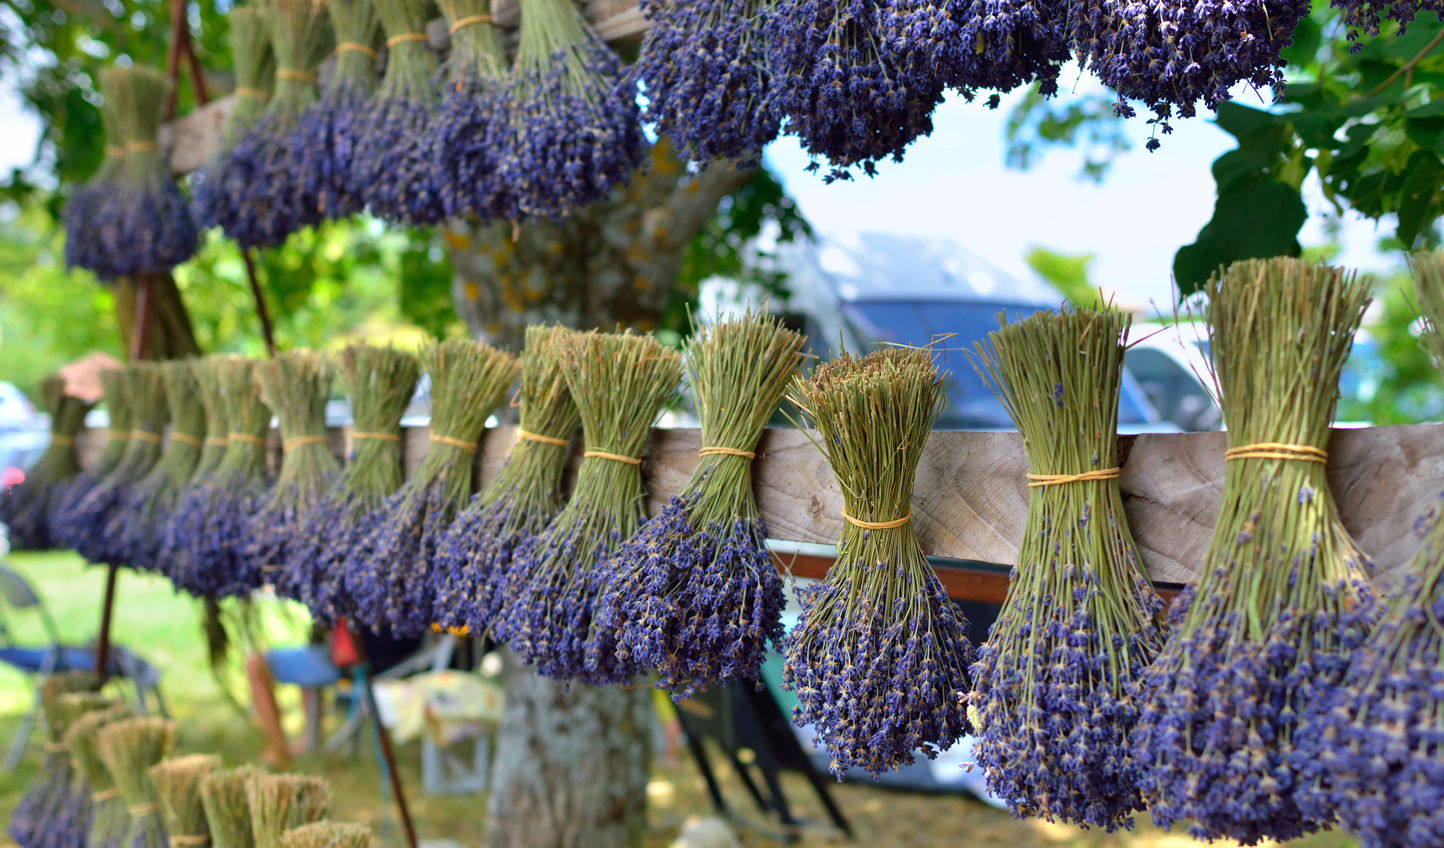 The famous dried lavender of Provence